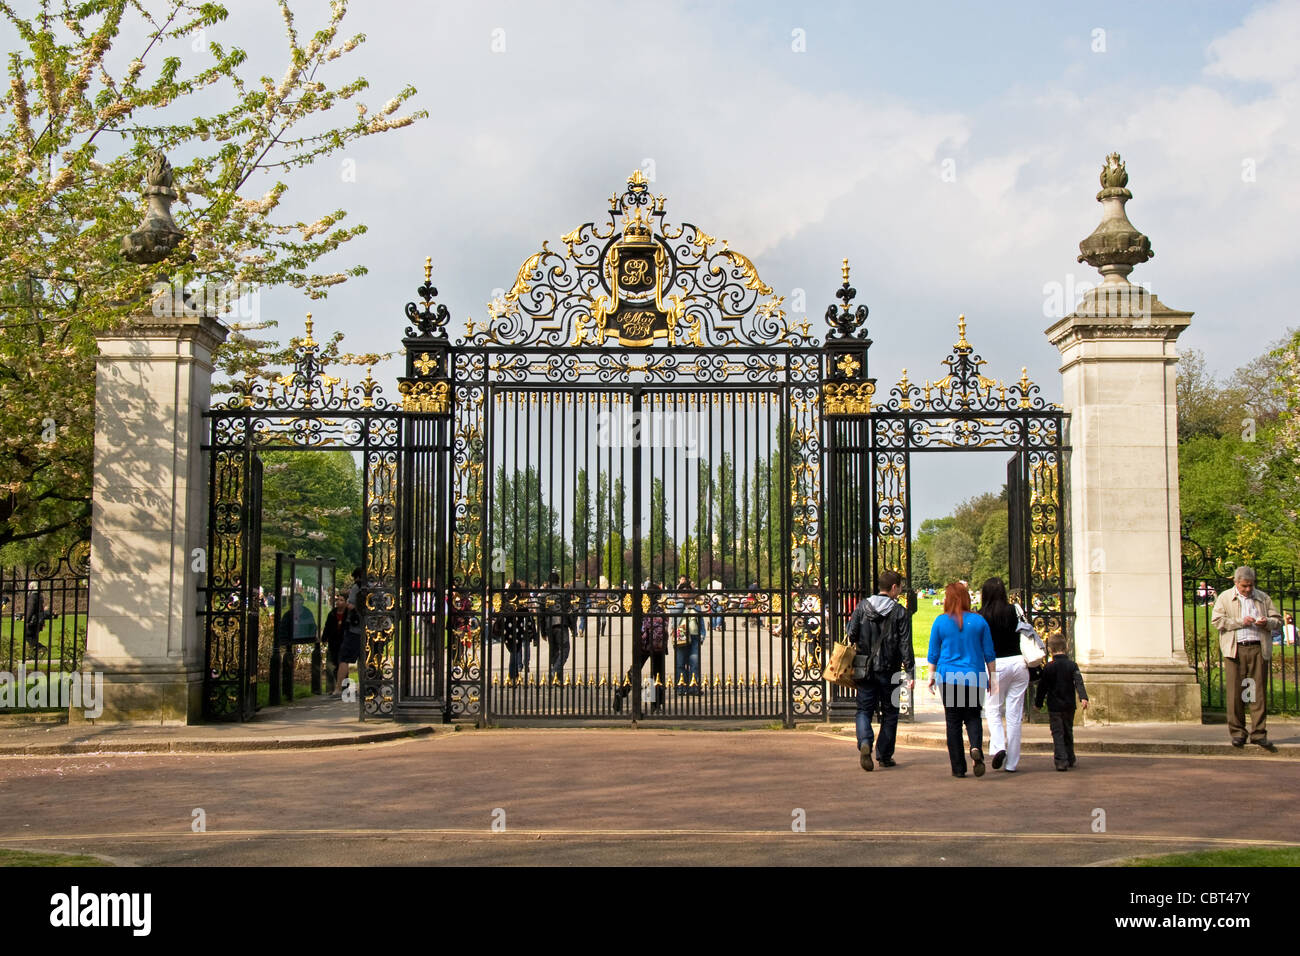 Jubilee Gates, entrance to Queen Mary's Gardens, Inner Circle,  Regents Park, London - Stock Image